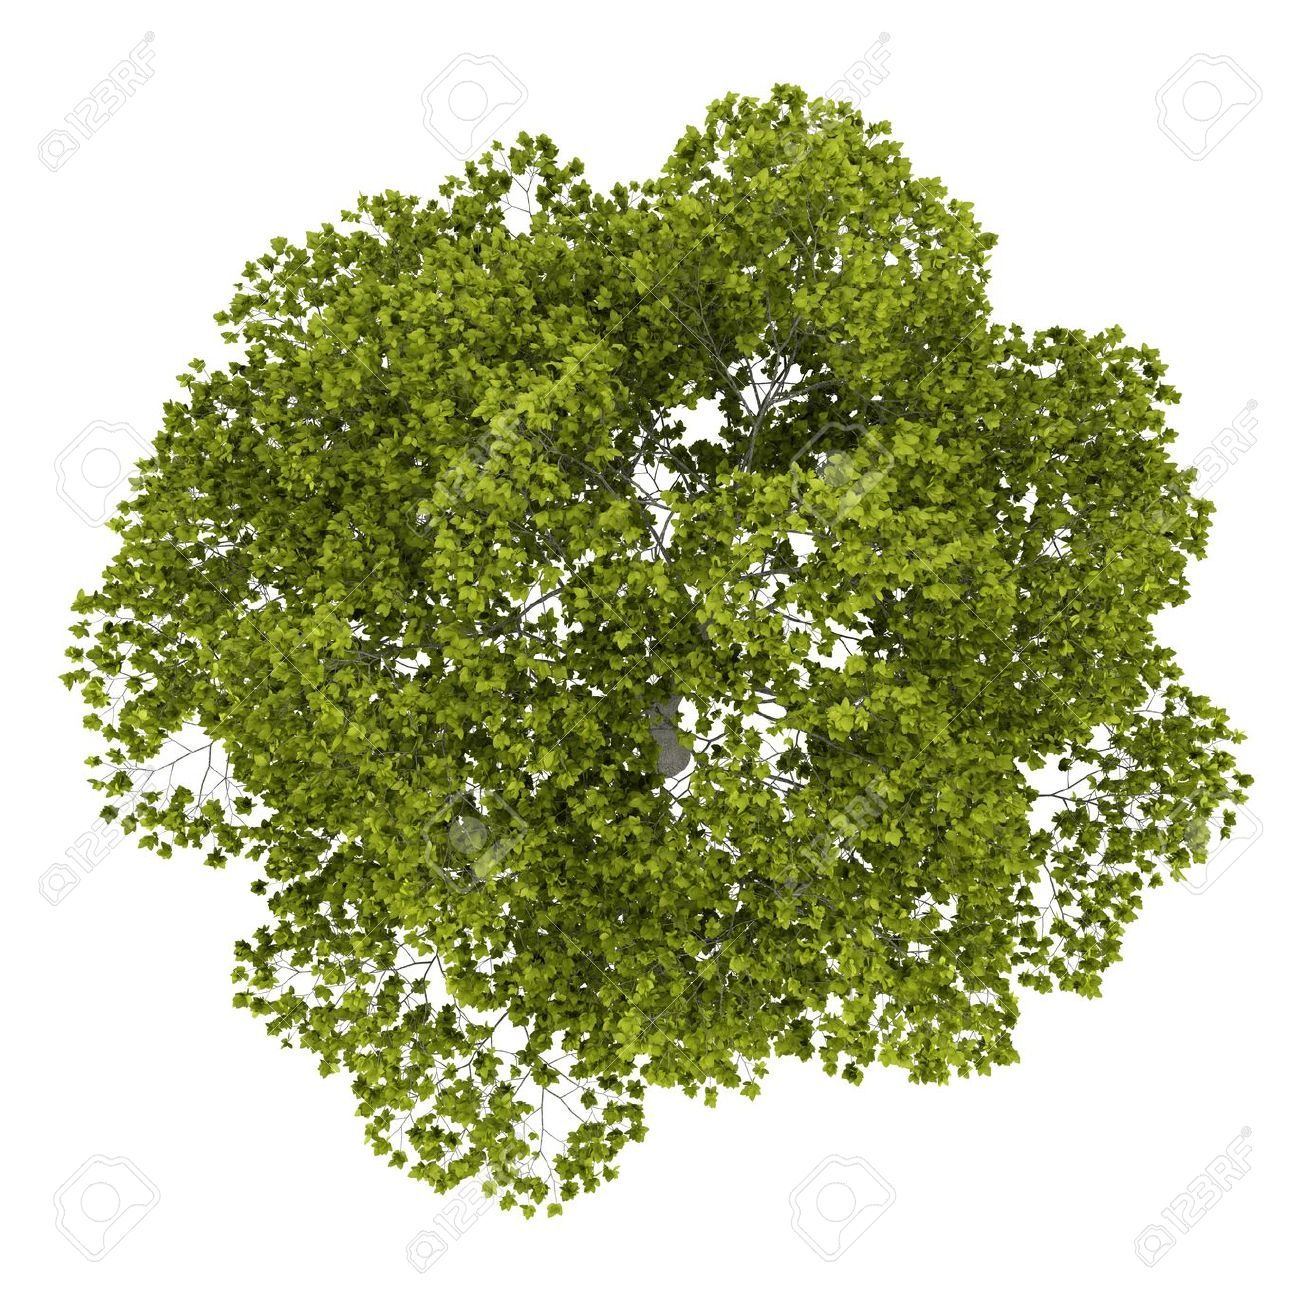 Top view plants 02 2d plant entourage for architecture - Picture Of Top View Of American Beech Tree Isolated On White Background Stock Photo Images And Stock Photography